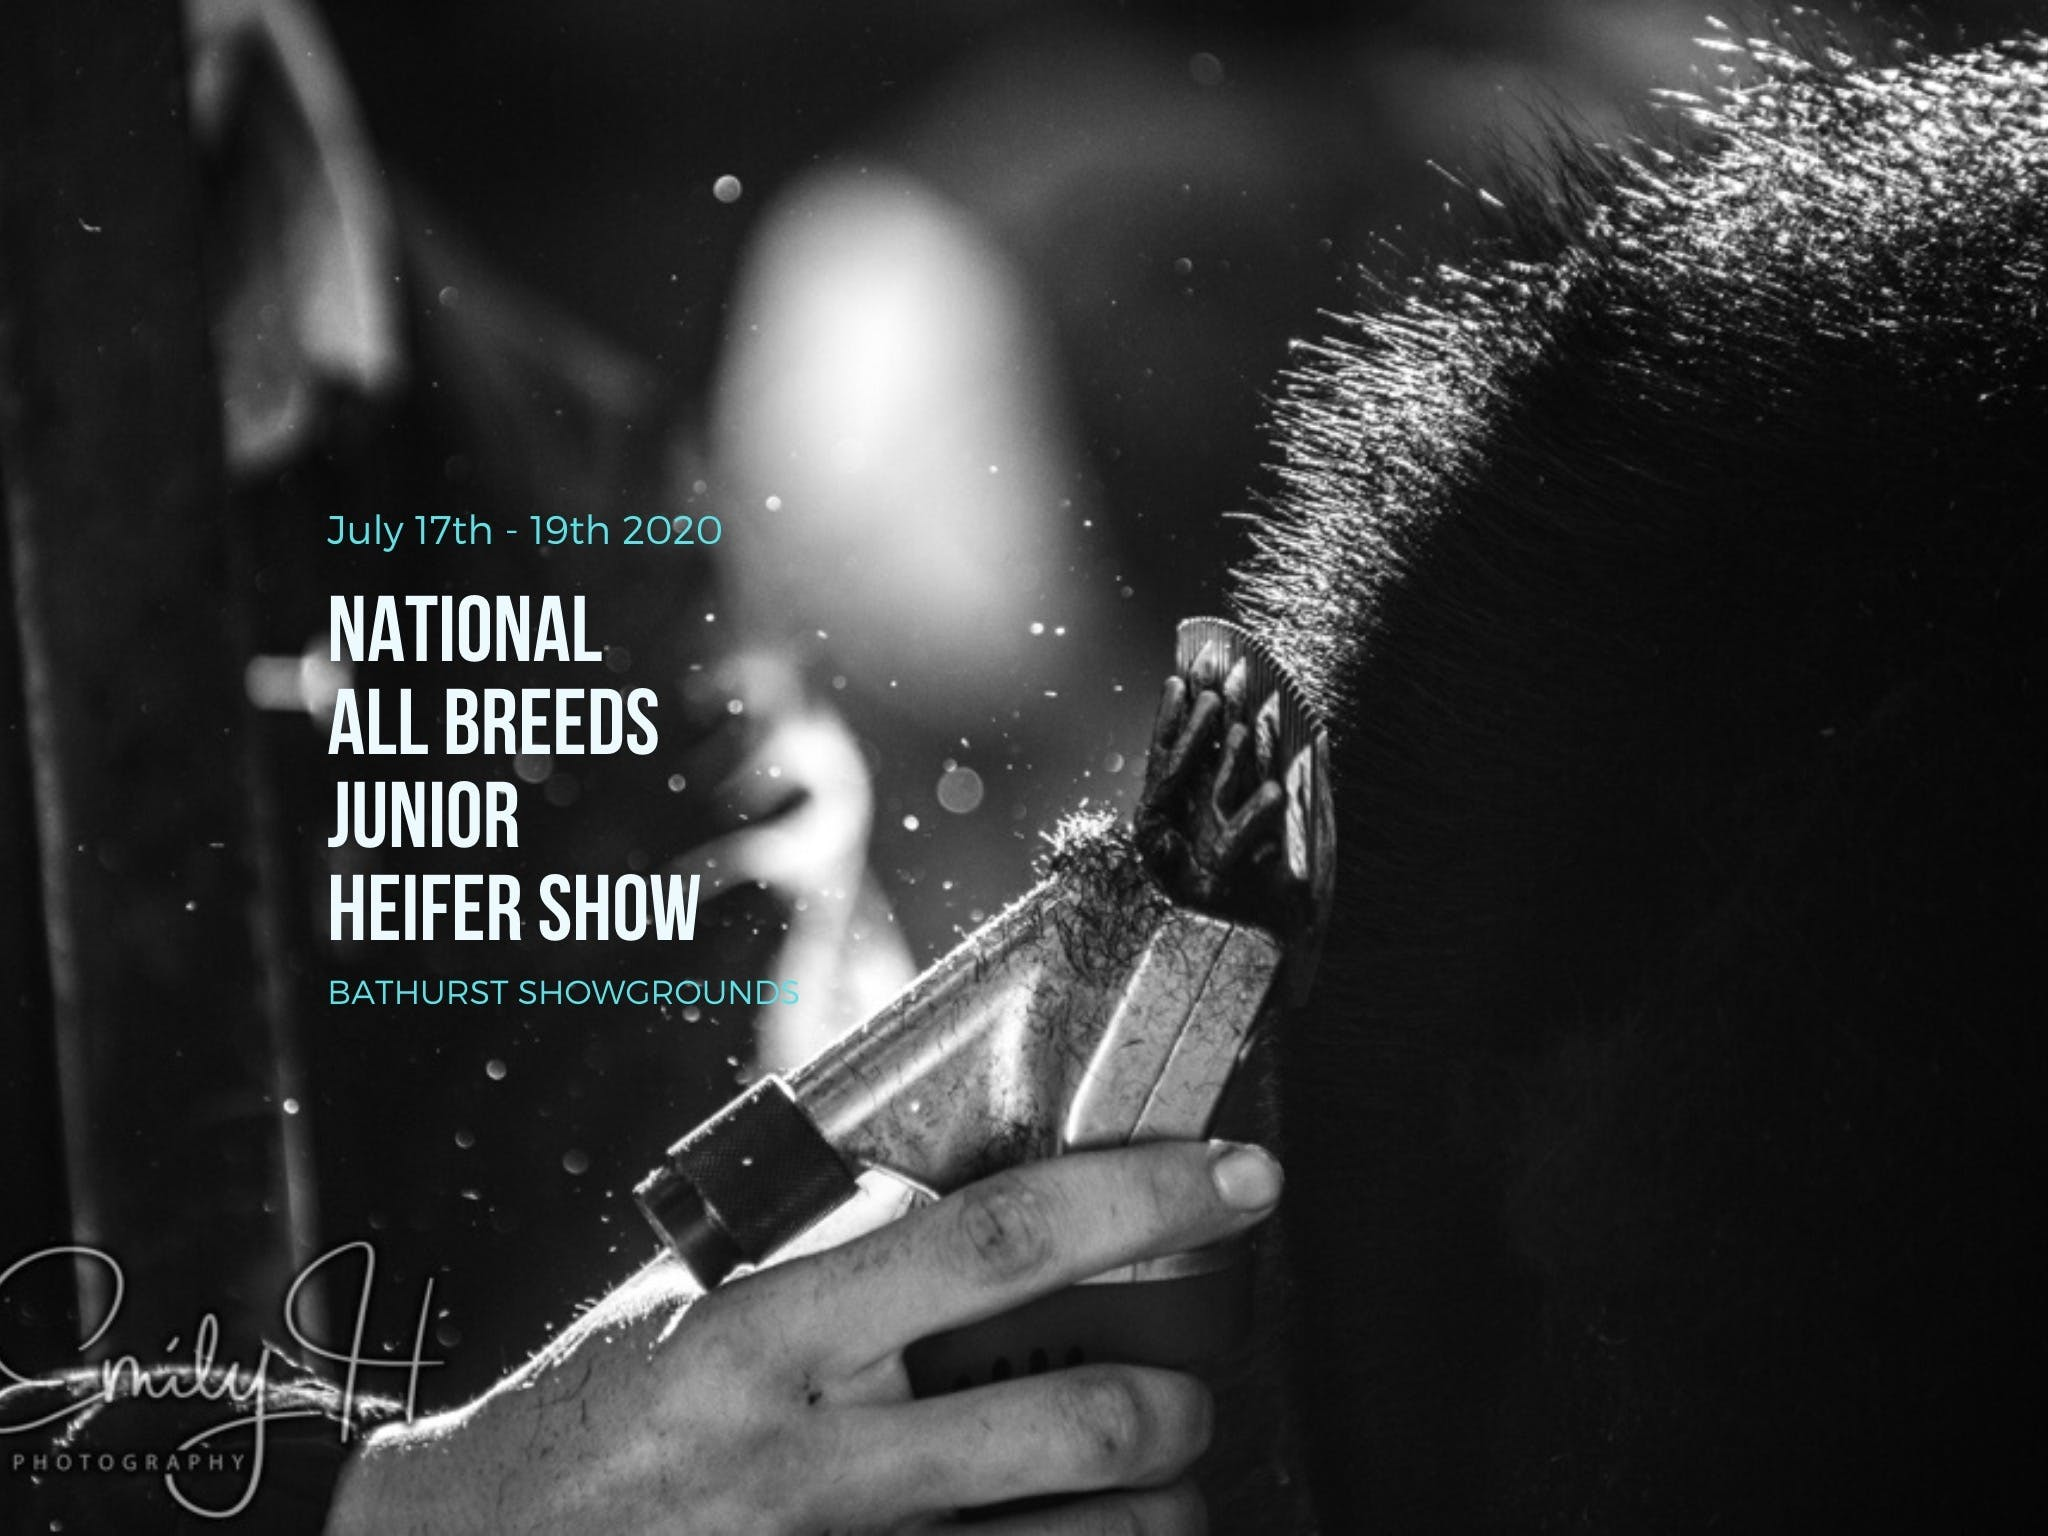 National All Breeds Junior Heifer Show - Hotel Accommodation